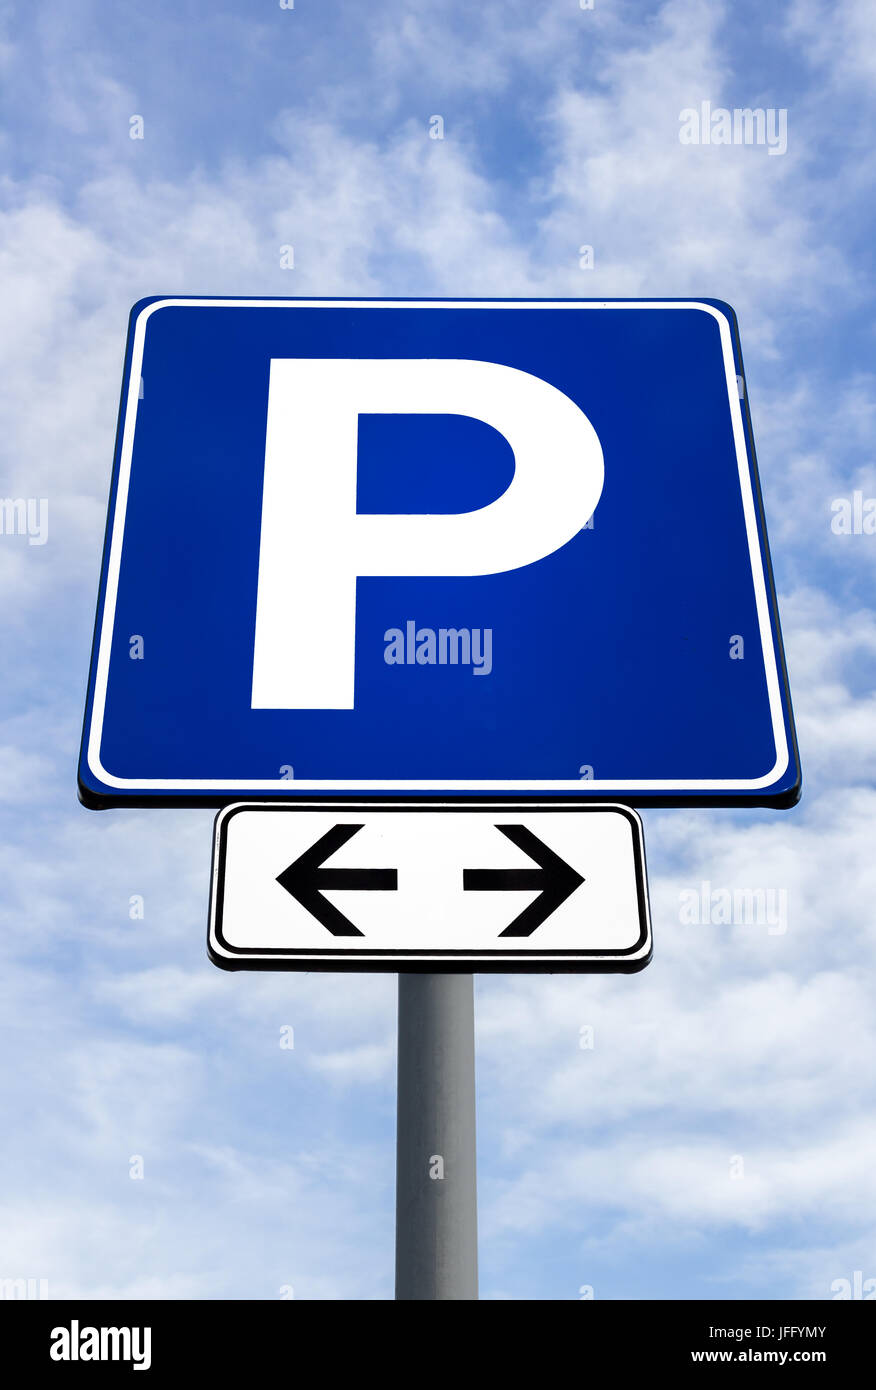 Streetsign for a parking lot - Stock Image